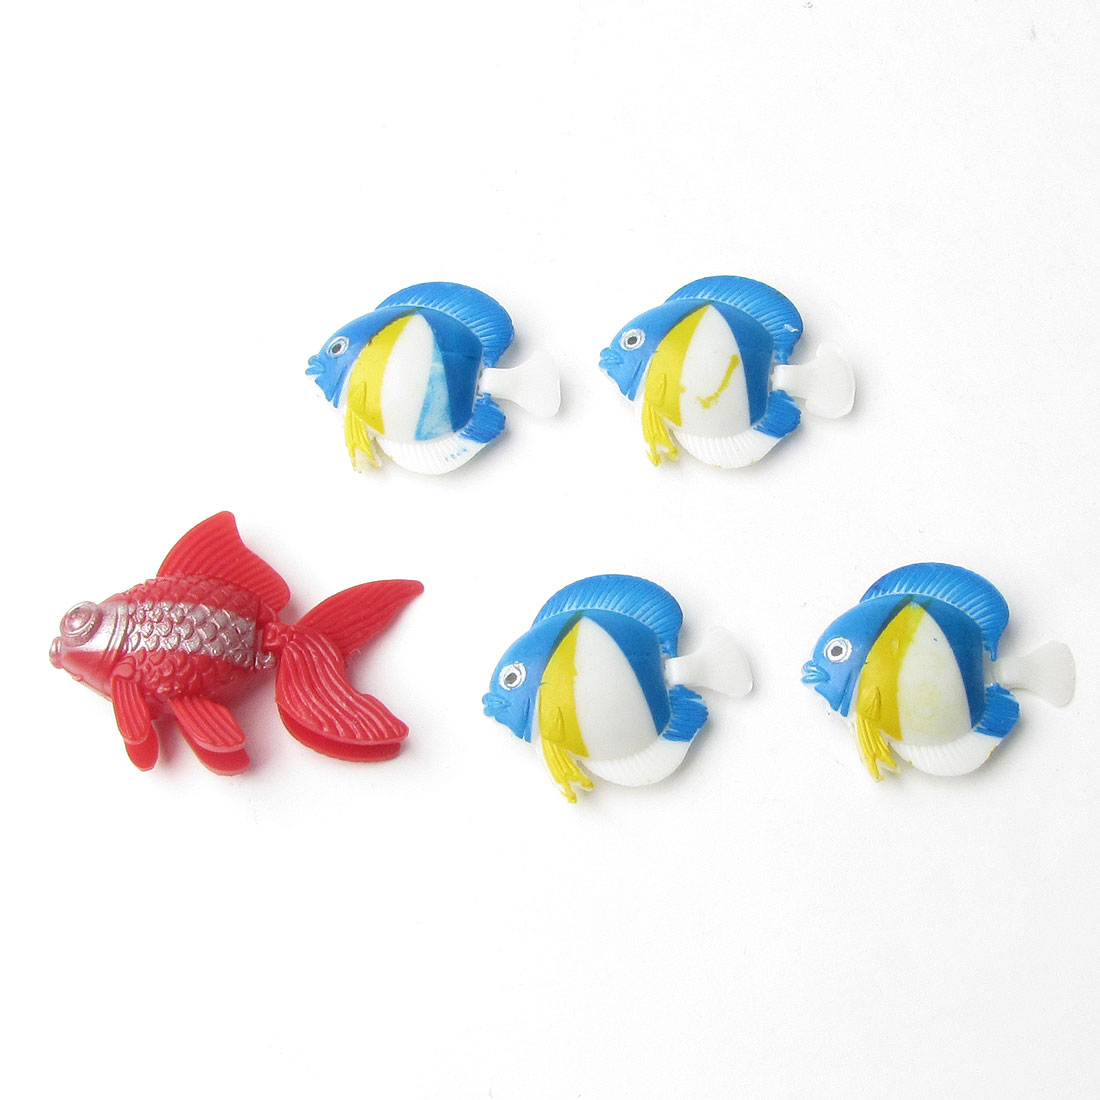 Aquarium Fish Tank Decoration Plastic Manmade Floating Fish Ornament 5pcs